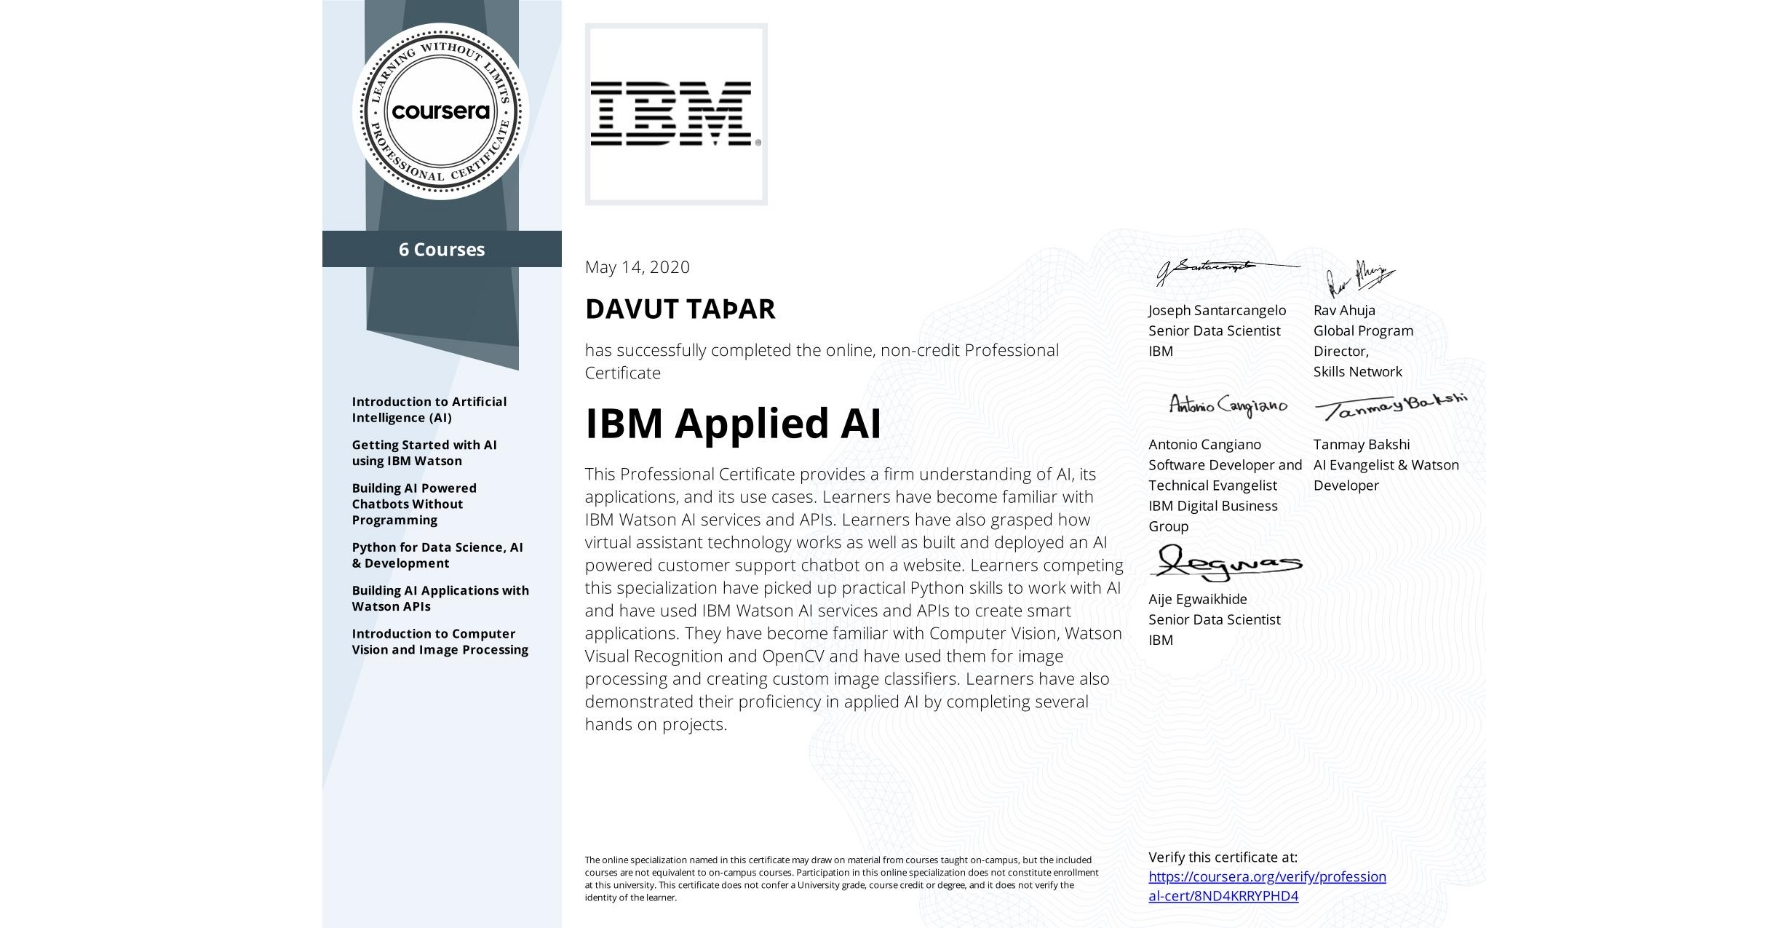 View certificate for DAVUT EMRE  TAŞAR, IBM Applied AI, offered through Coursera. This Professional Certificate provides a firm understanding of AI, its applications, and its use cases. Learners have become familiar with IBM Watson AI services and APIs. Learners have also grasped how virtual assistant technology works as well as built and deployed an AI powered customer support chatbot on a website. Learners competing this specialization have picked up practical Python skills to work with AI and have used IBM Watson AI services and APIs to create smart applications. They have become familiar with Computer Vision, Watson Visual Recognition and OpenCV and have used them for image processing and creating custom image classifiers. Learners have also demonstrated their proficiency in applied AI by completing several hands on projects.